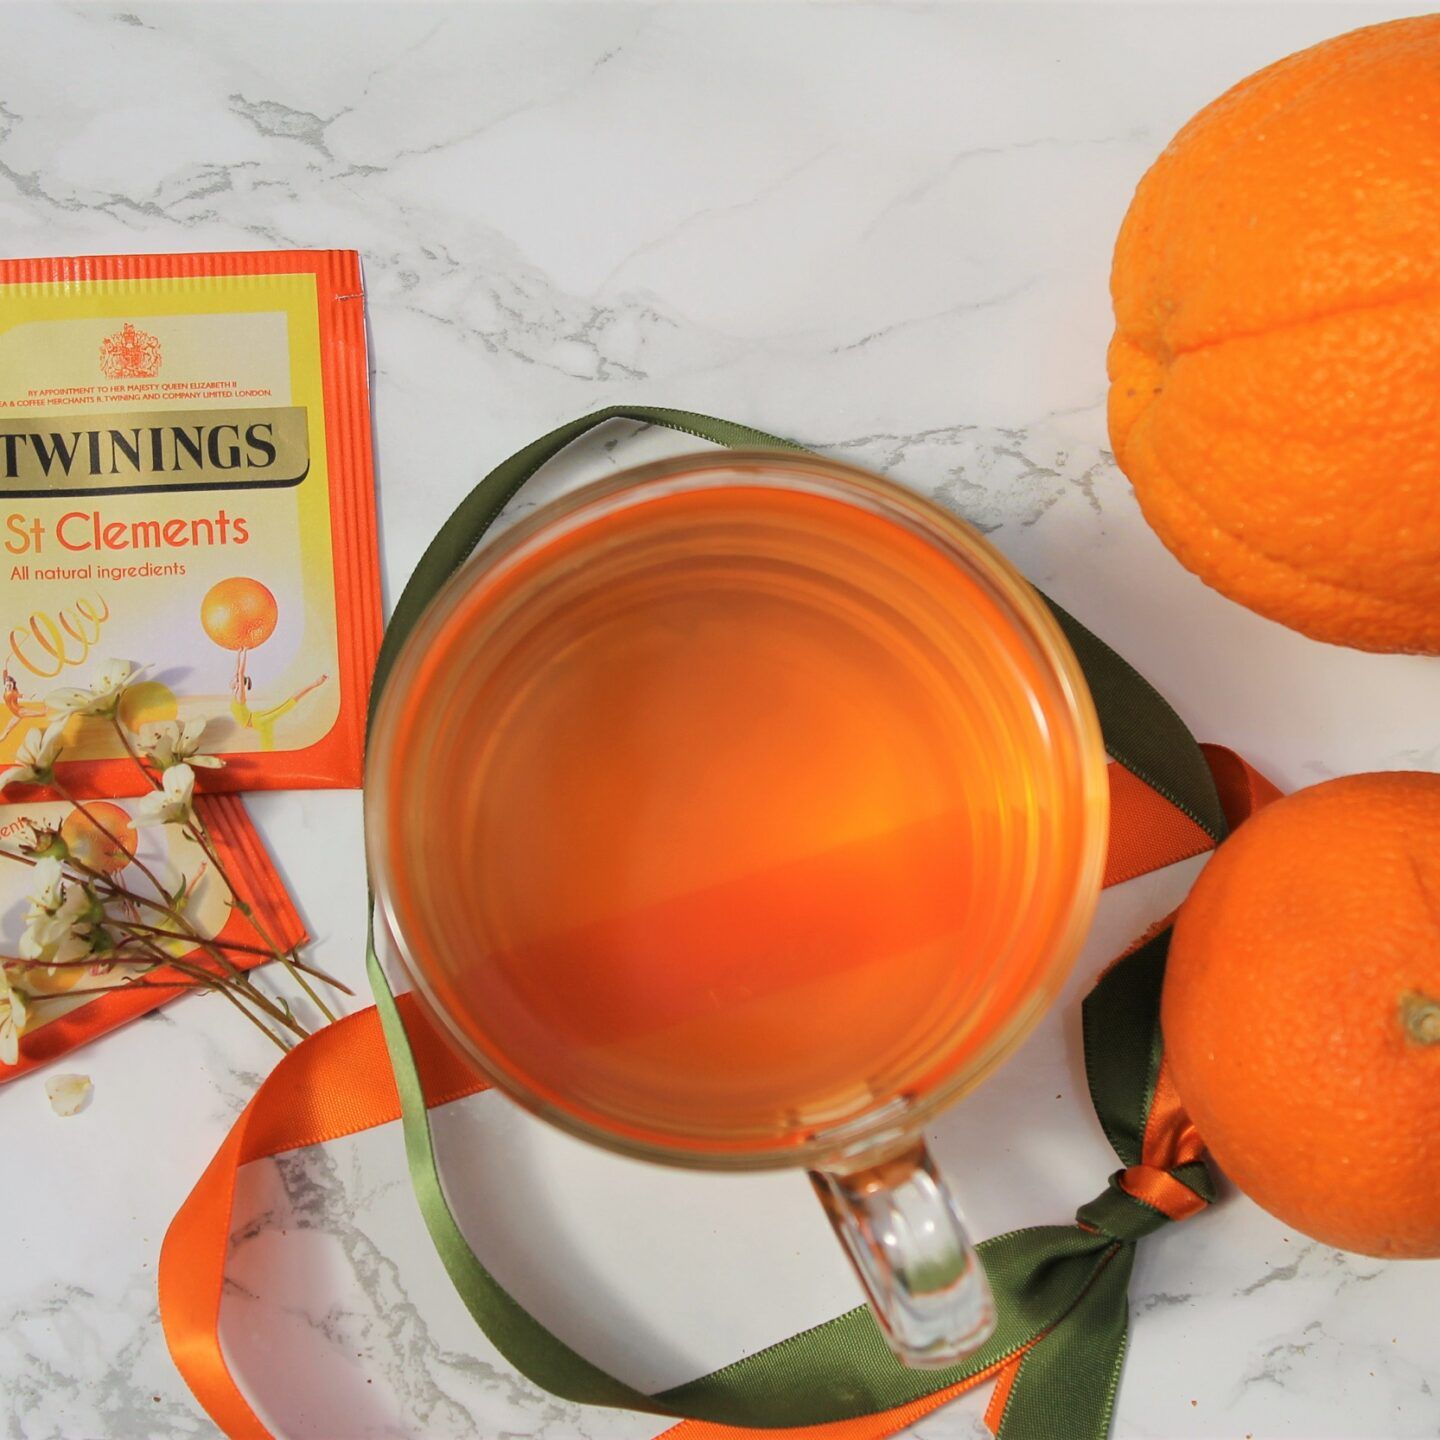 Twinings St Clements Tea Review